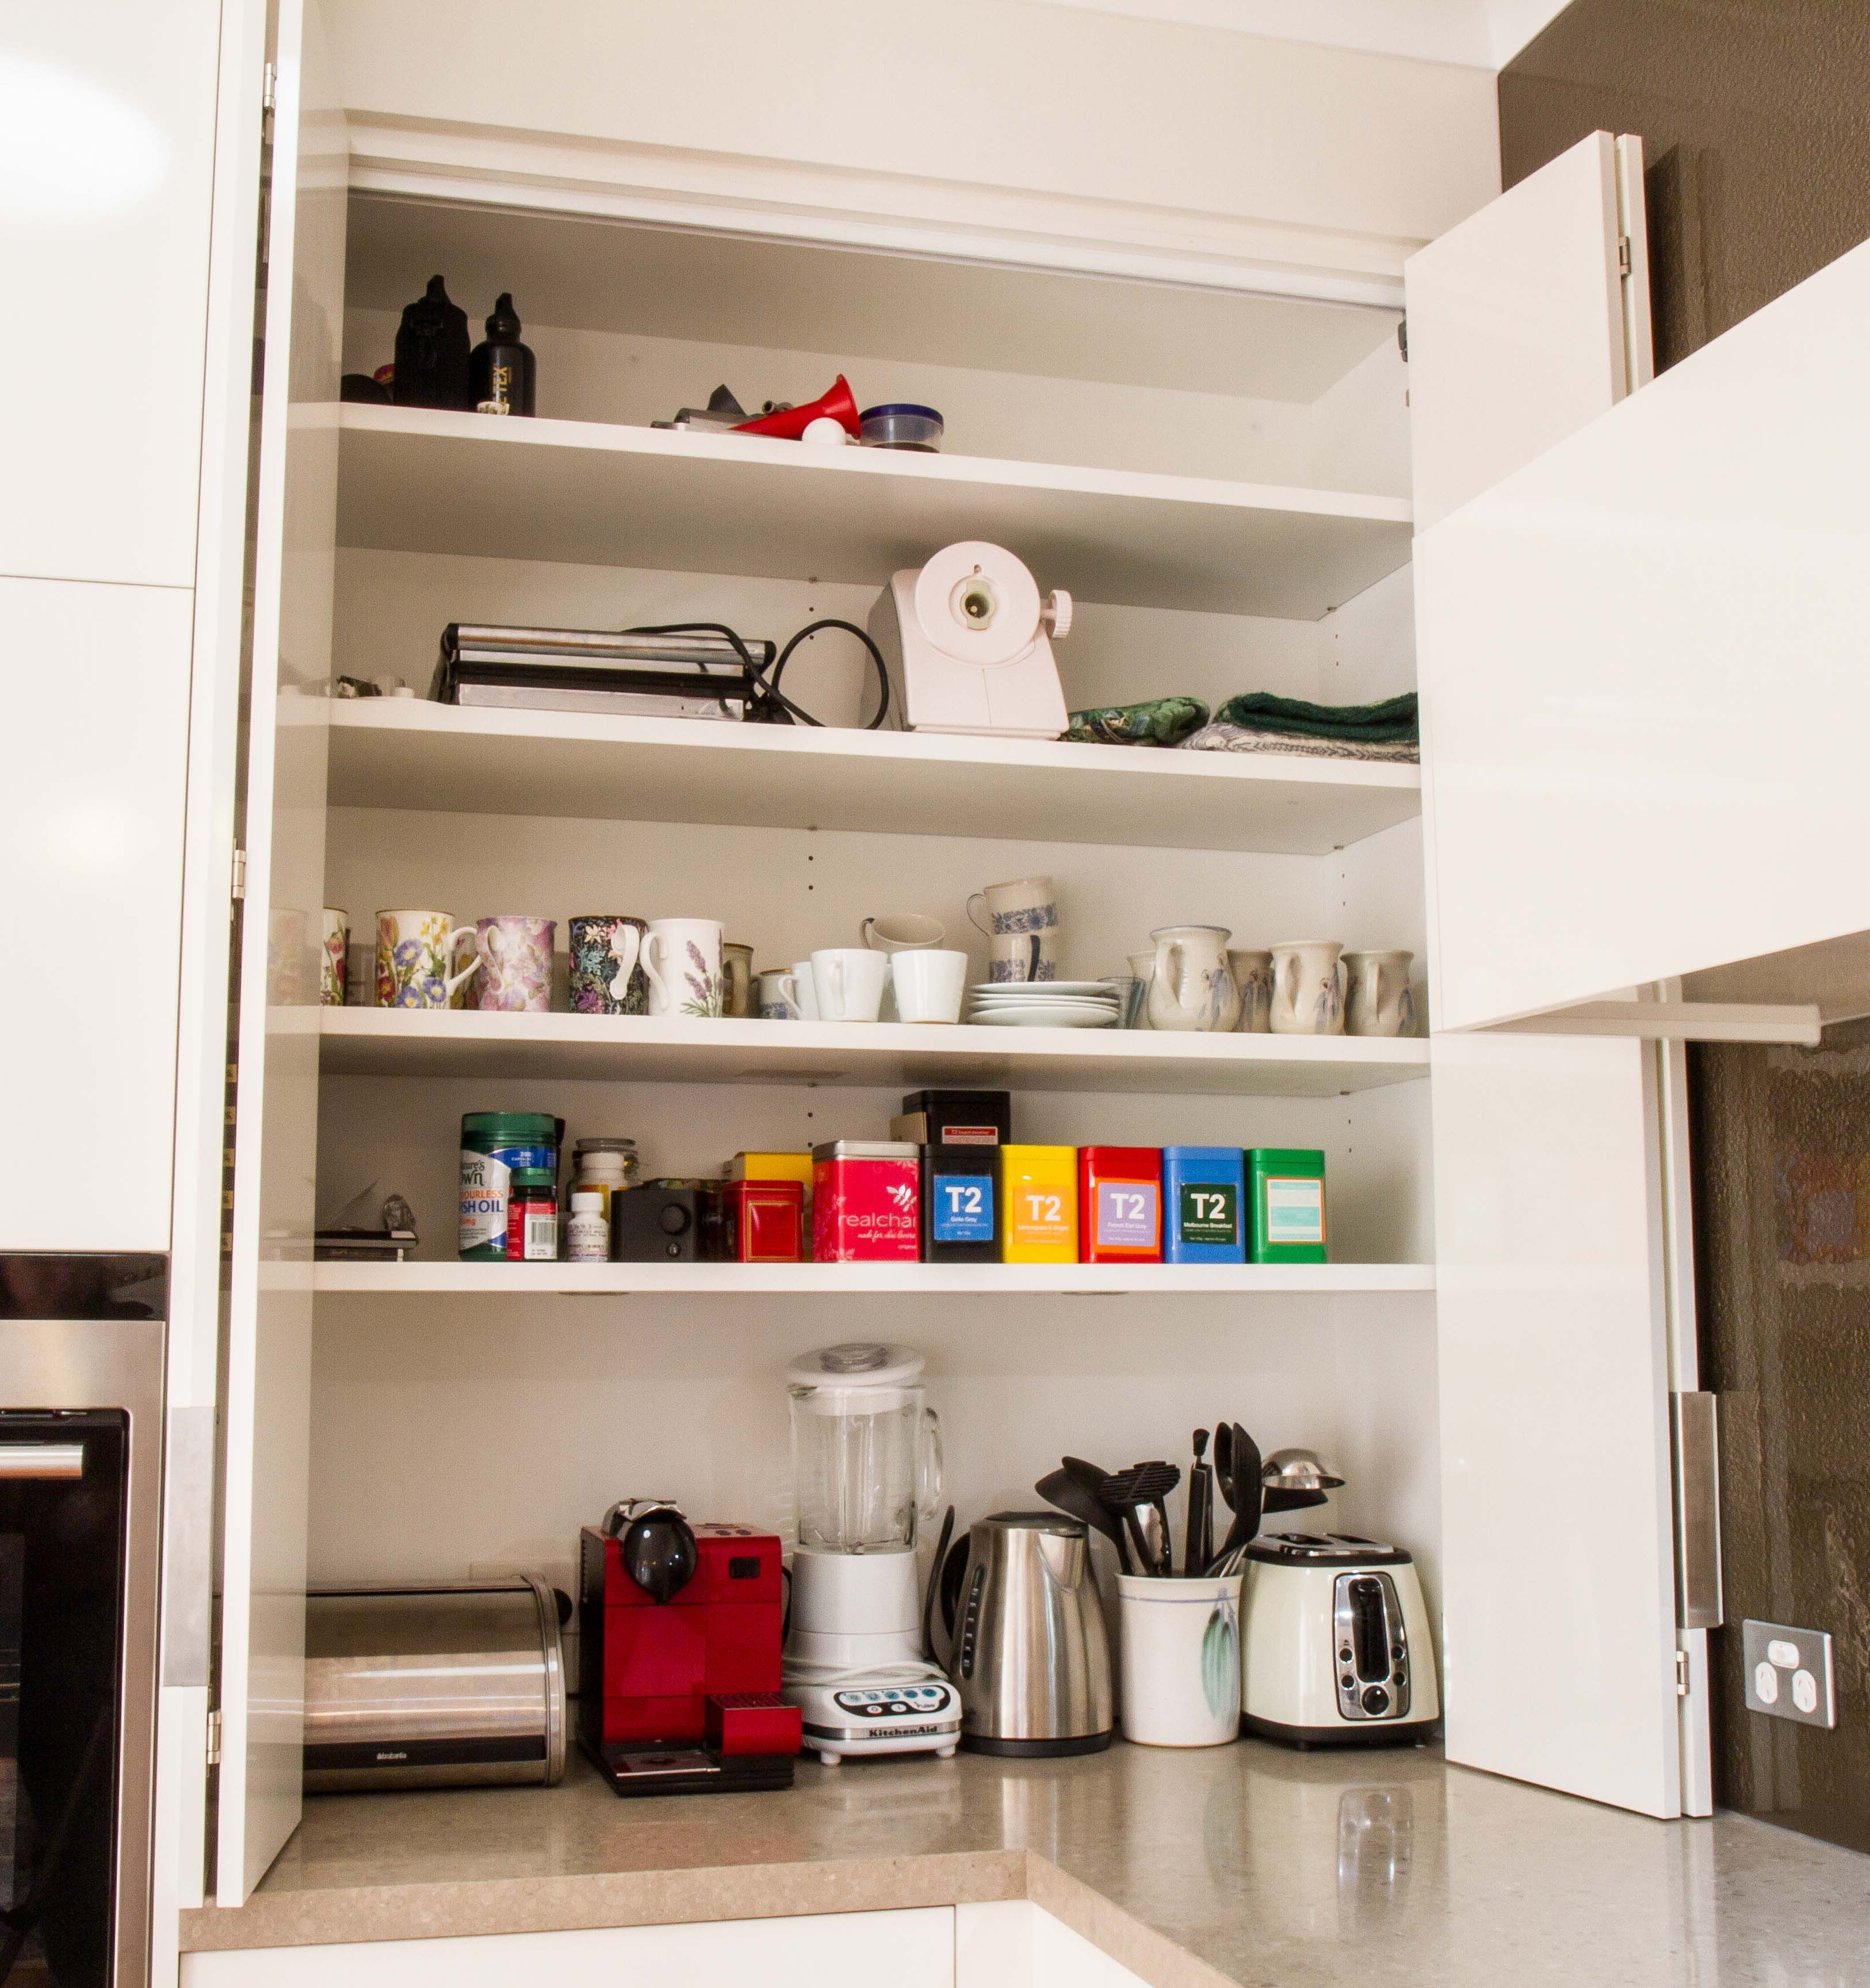 ... Home Hardware Design Centre Appliance Pantry Bi Fold Doors Www  Thekitchendesigncentre Com Au ...